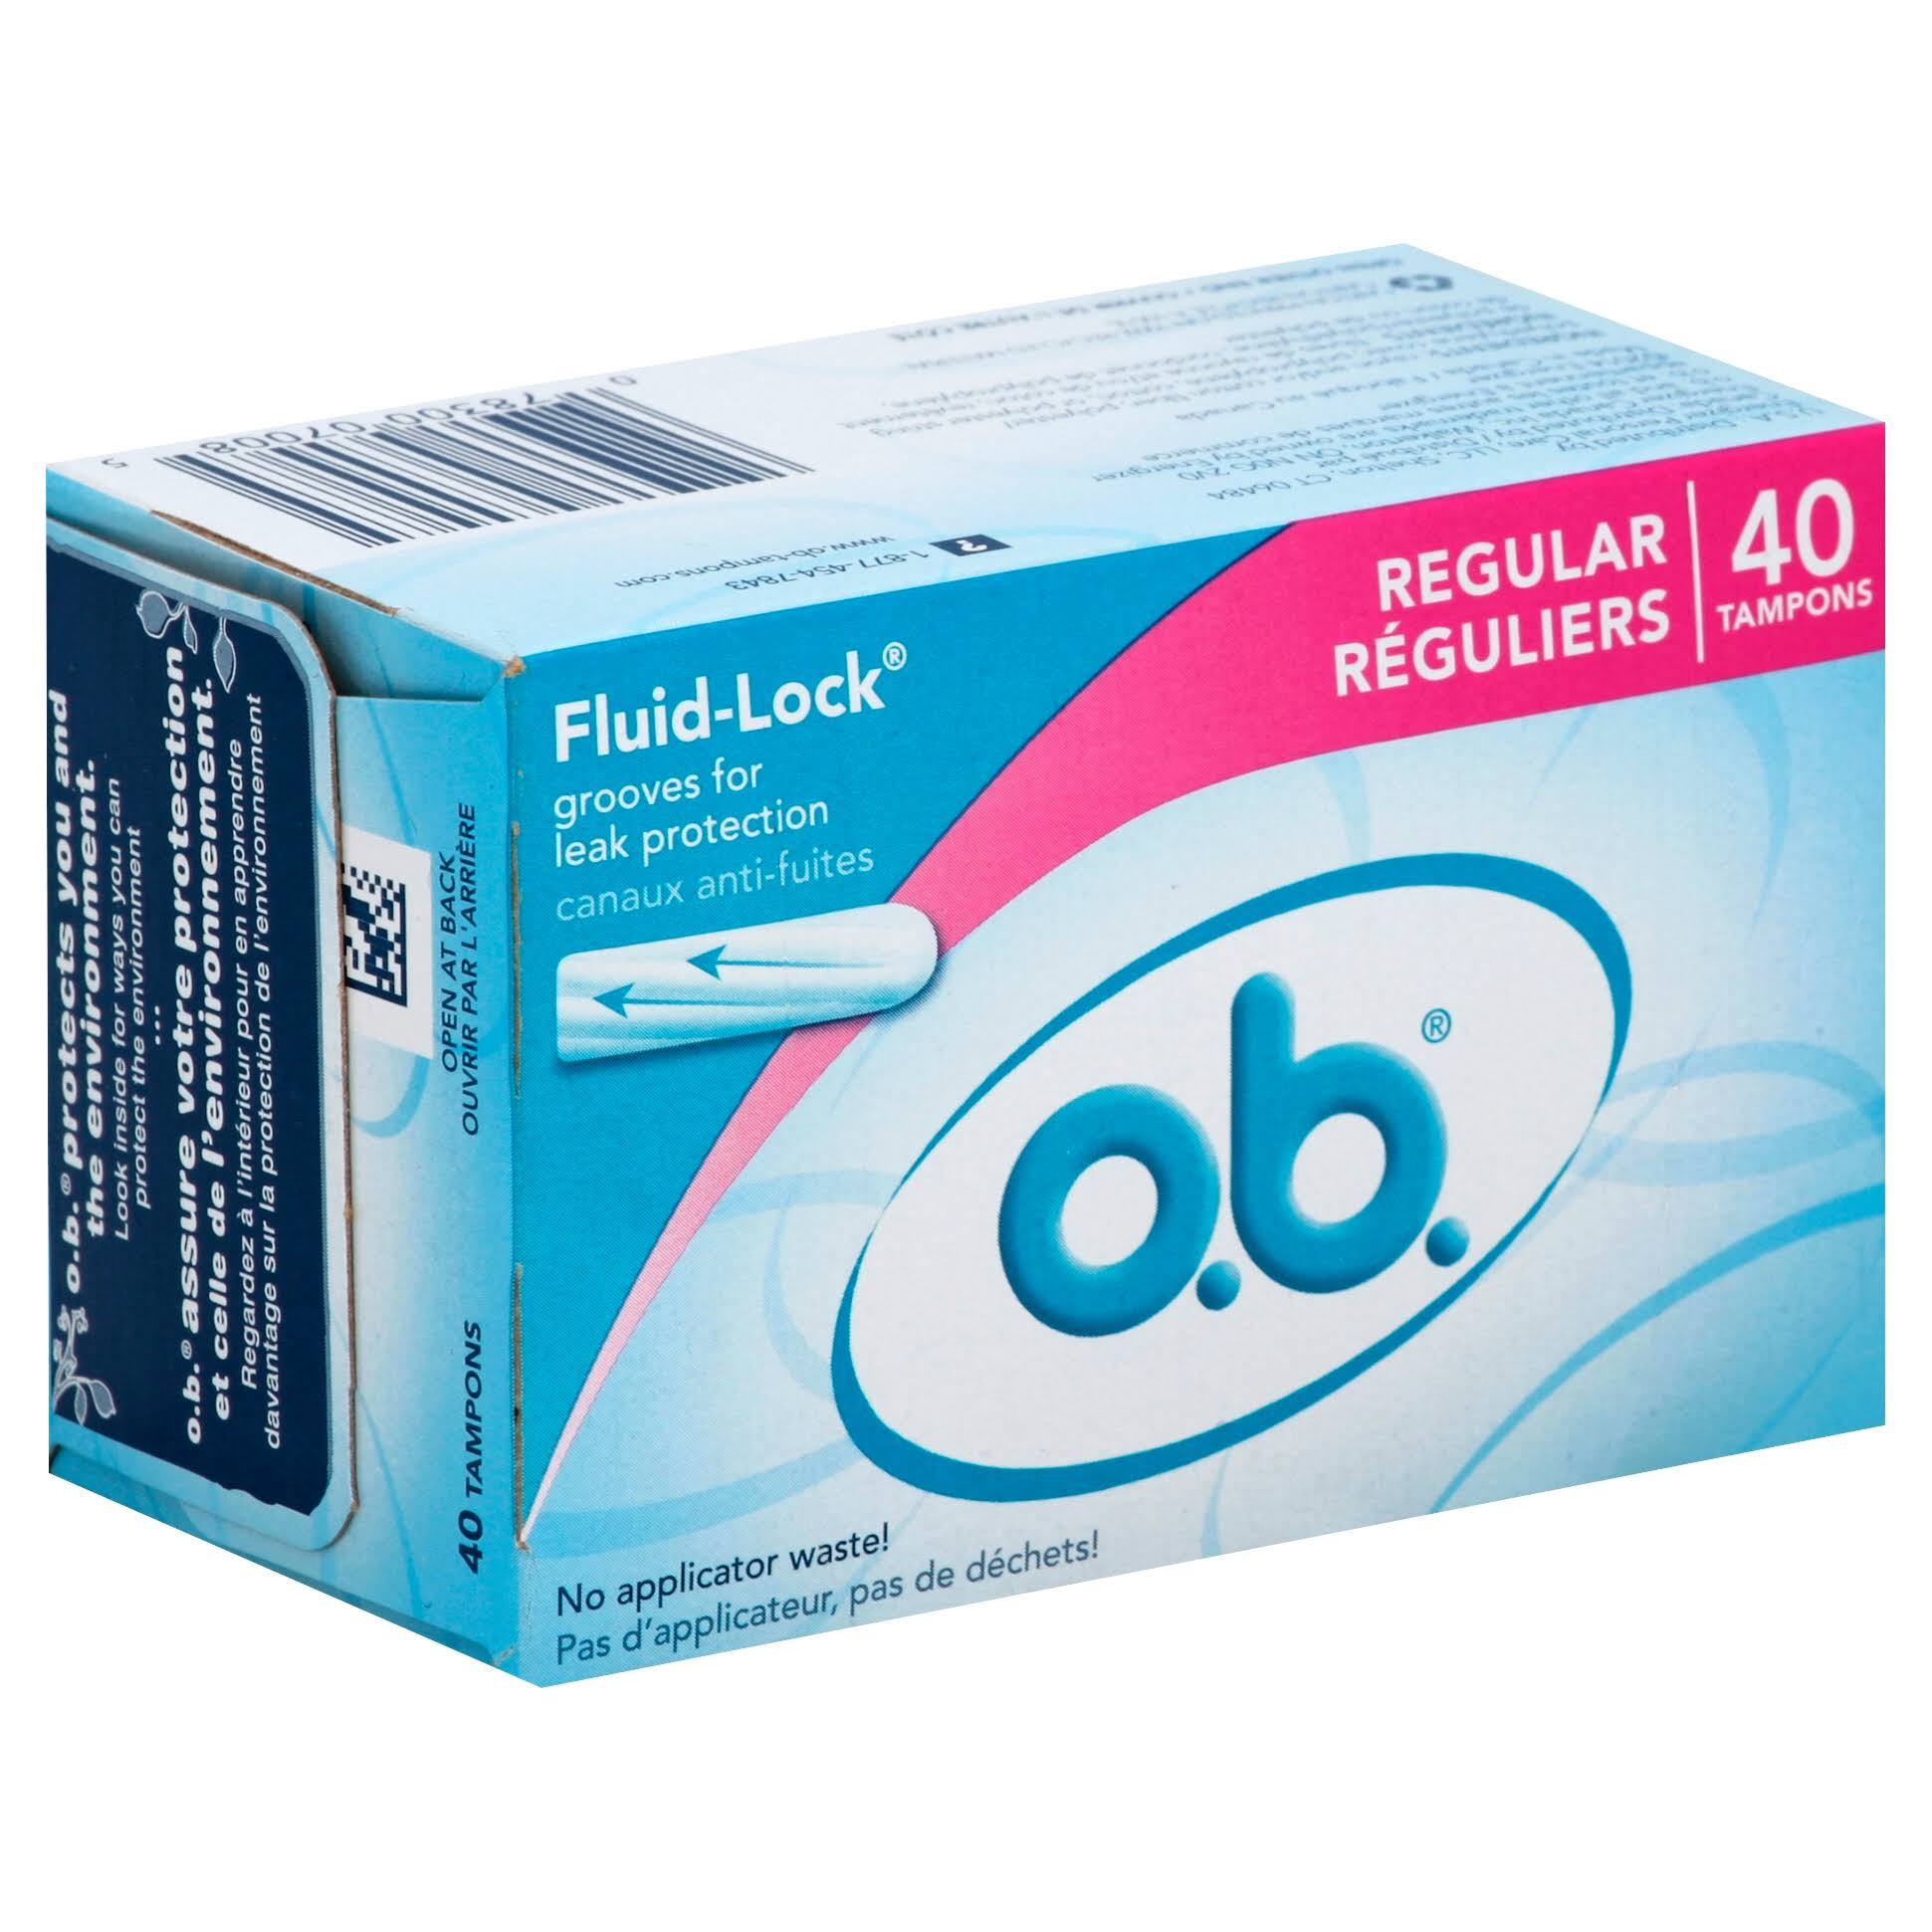 OB Tampons Applicator Free Fluid Lock - 40ct